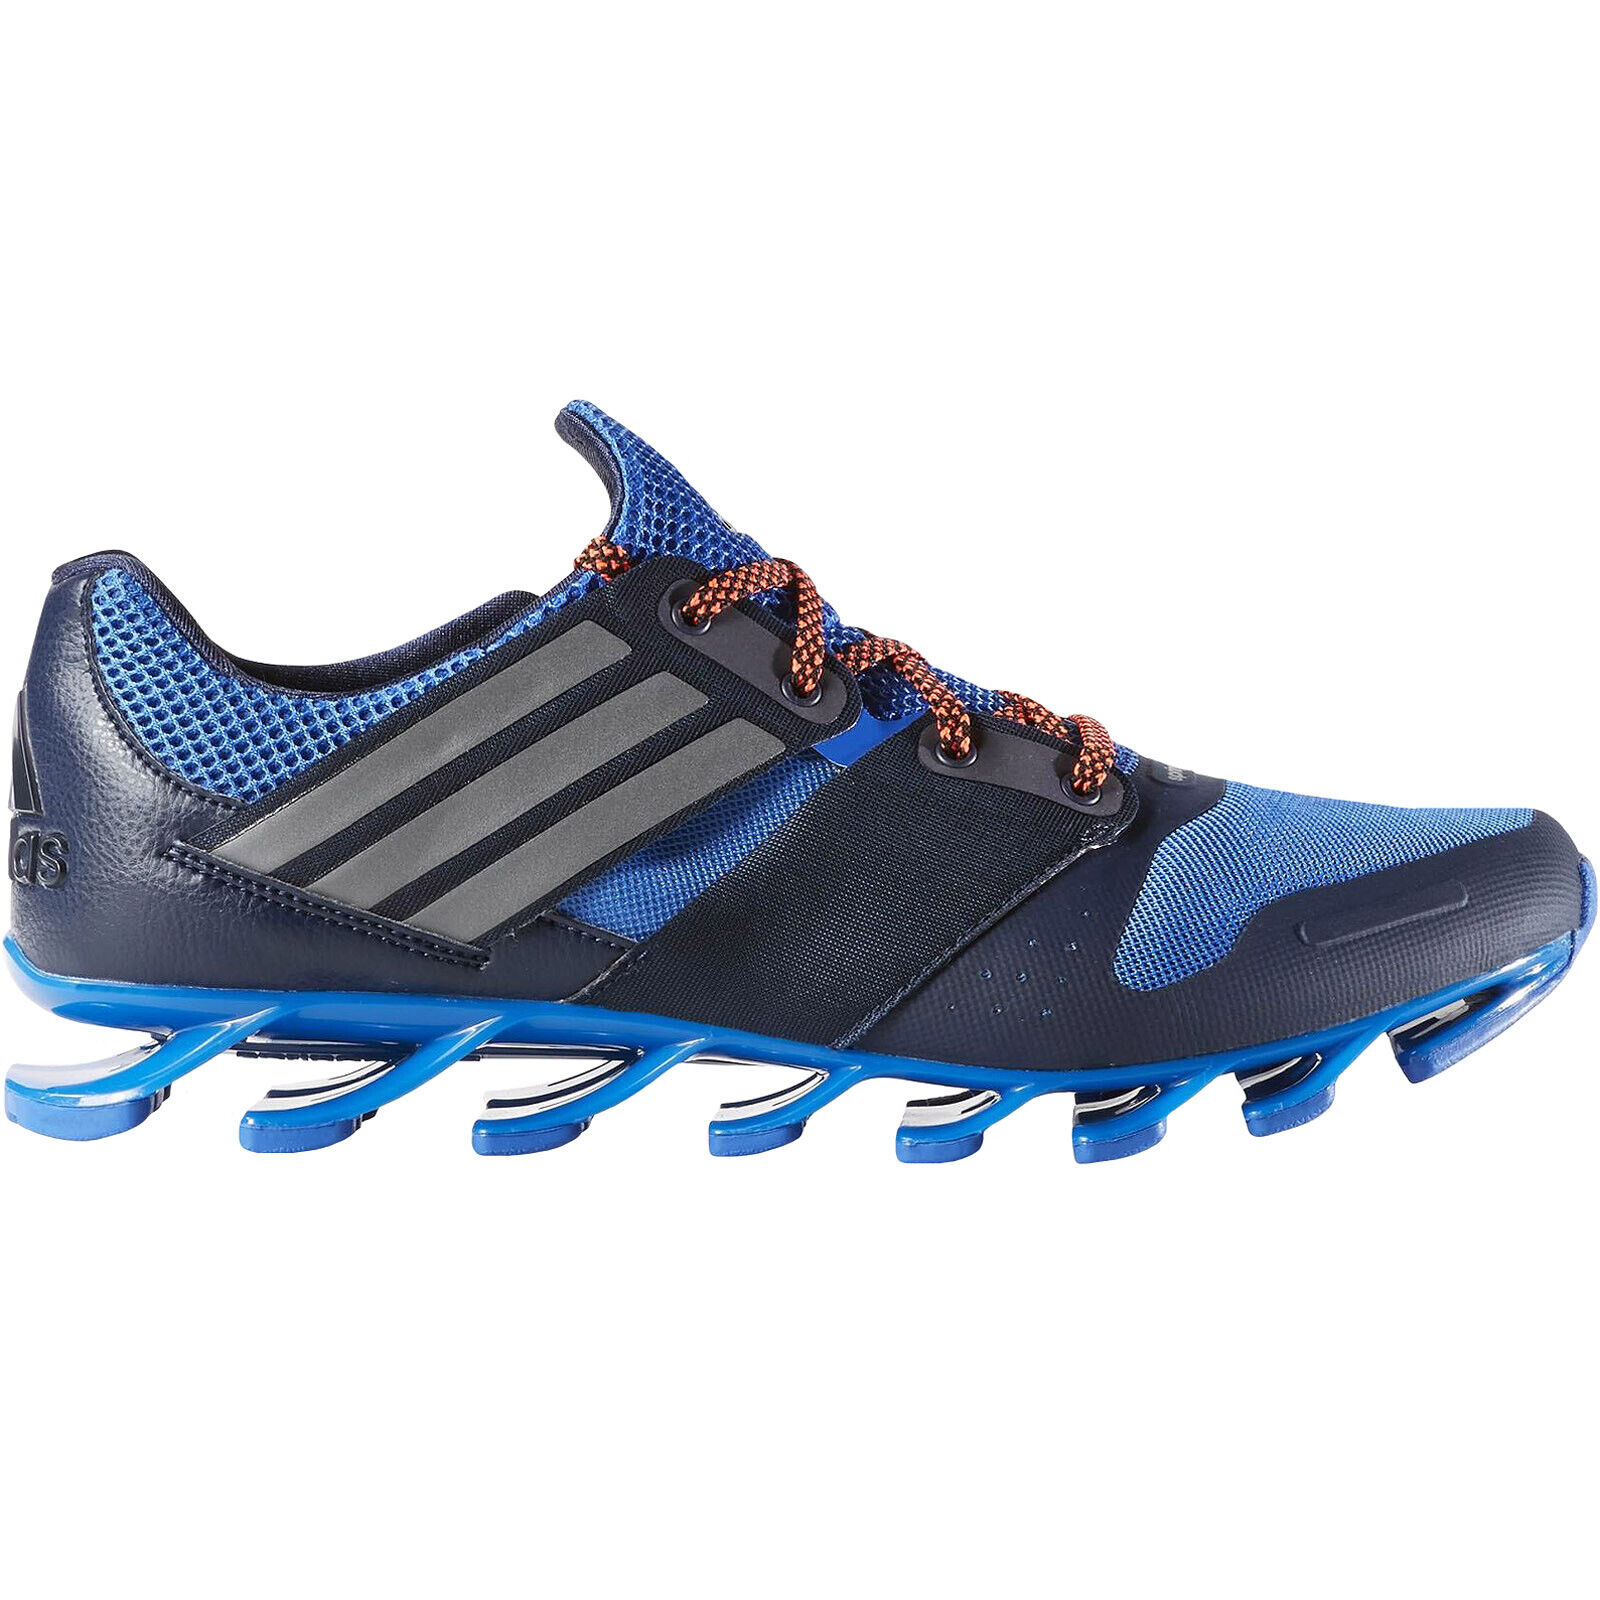 reputable site 1597d 95816 adidas Performance Mens Springblade Solyce Sport Running Trainers Shoes -  Navy